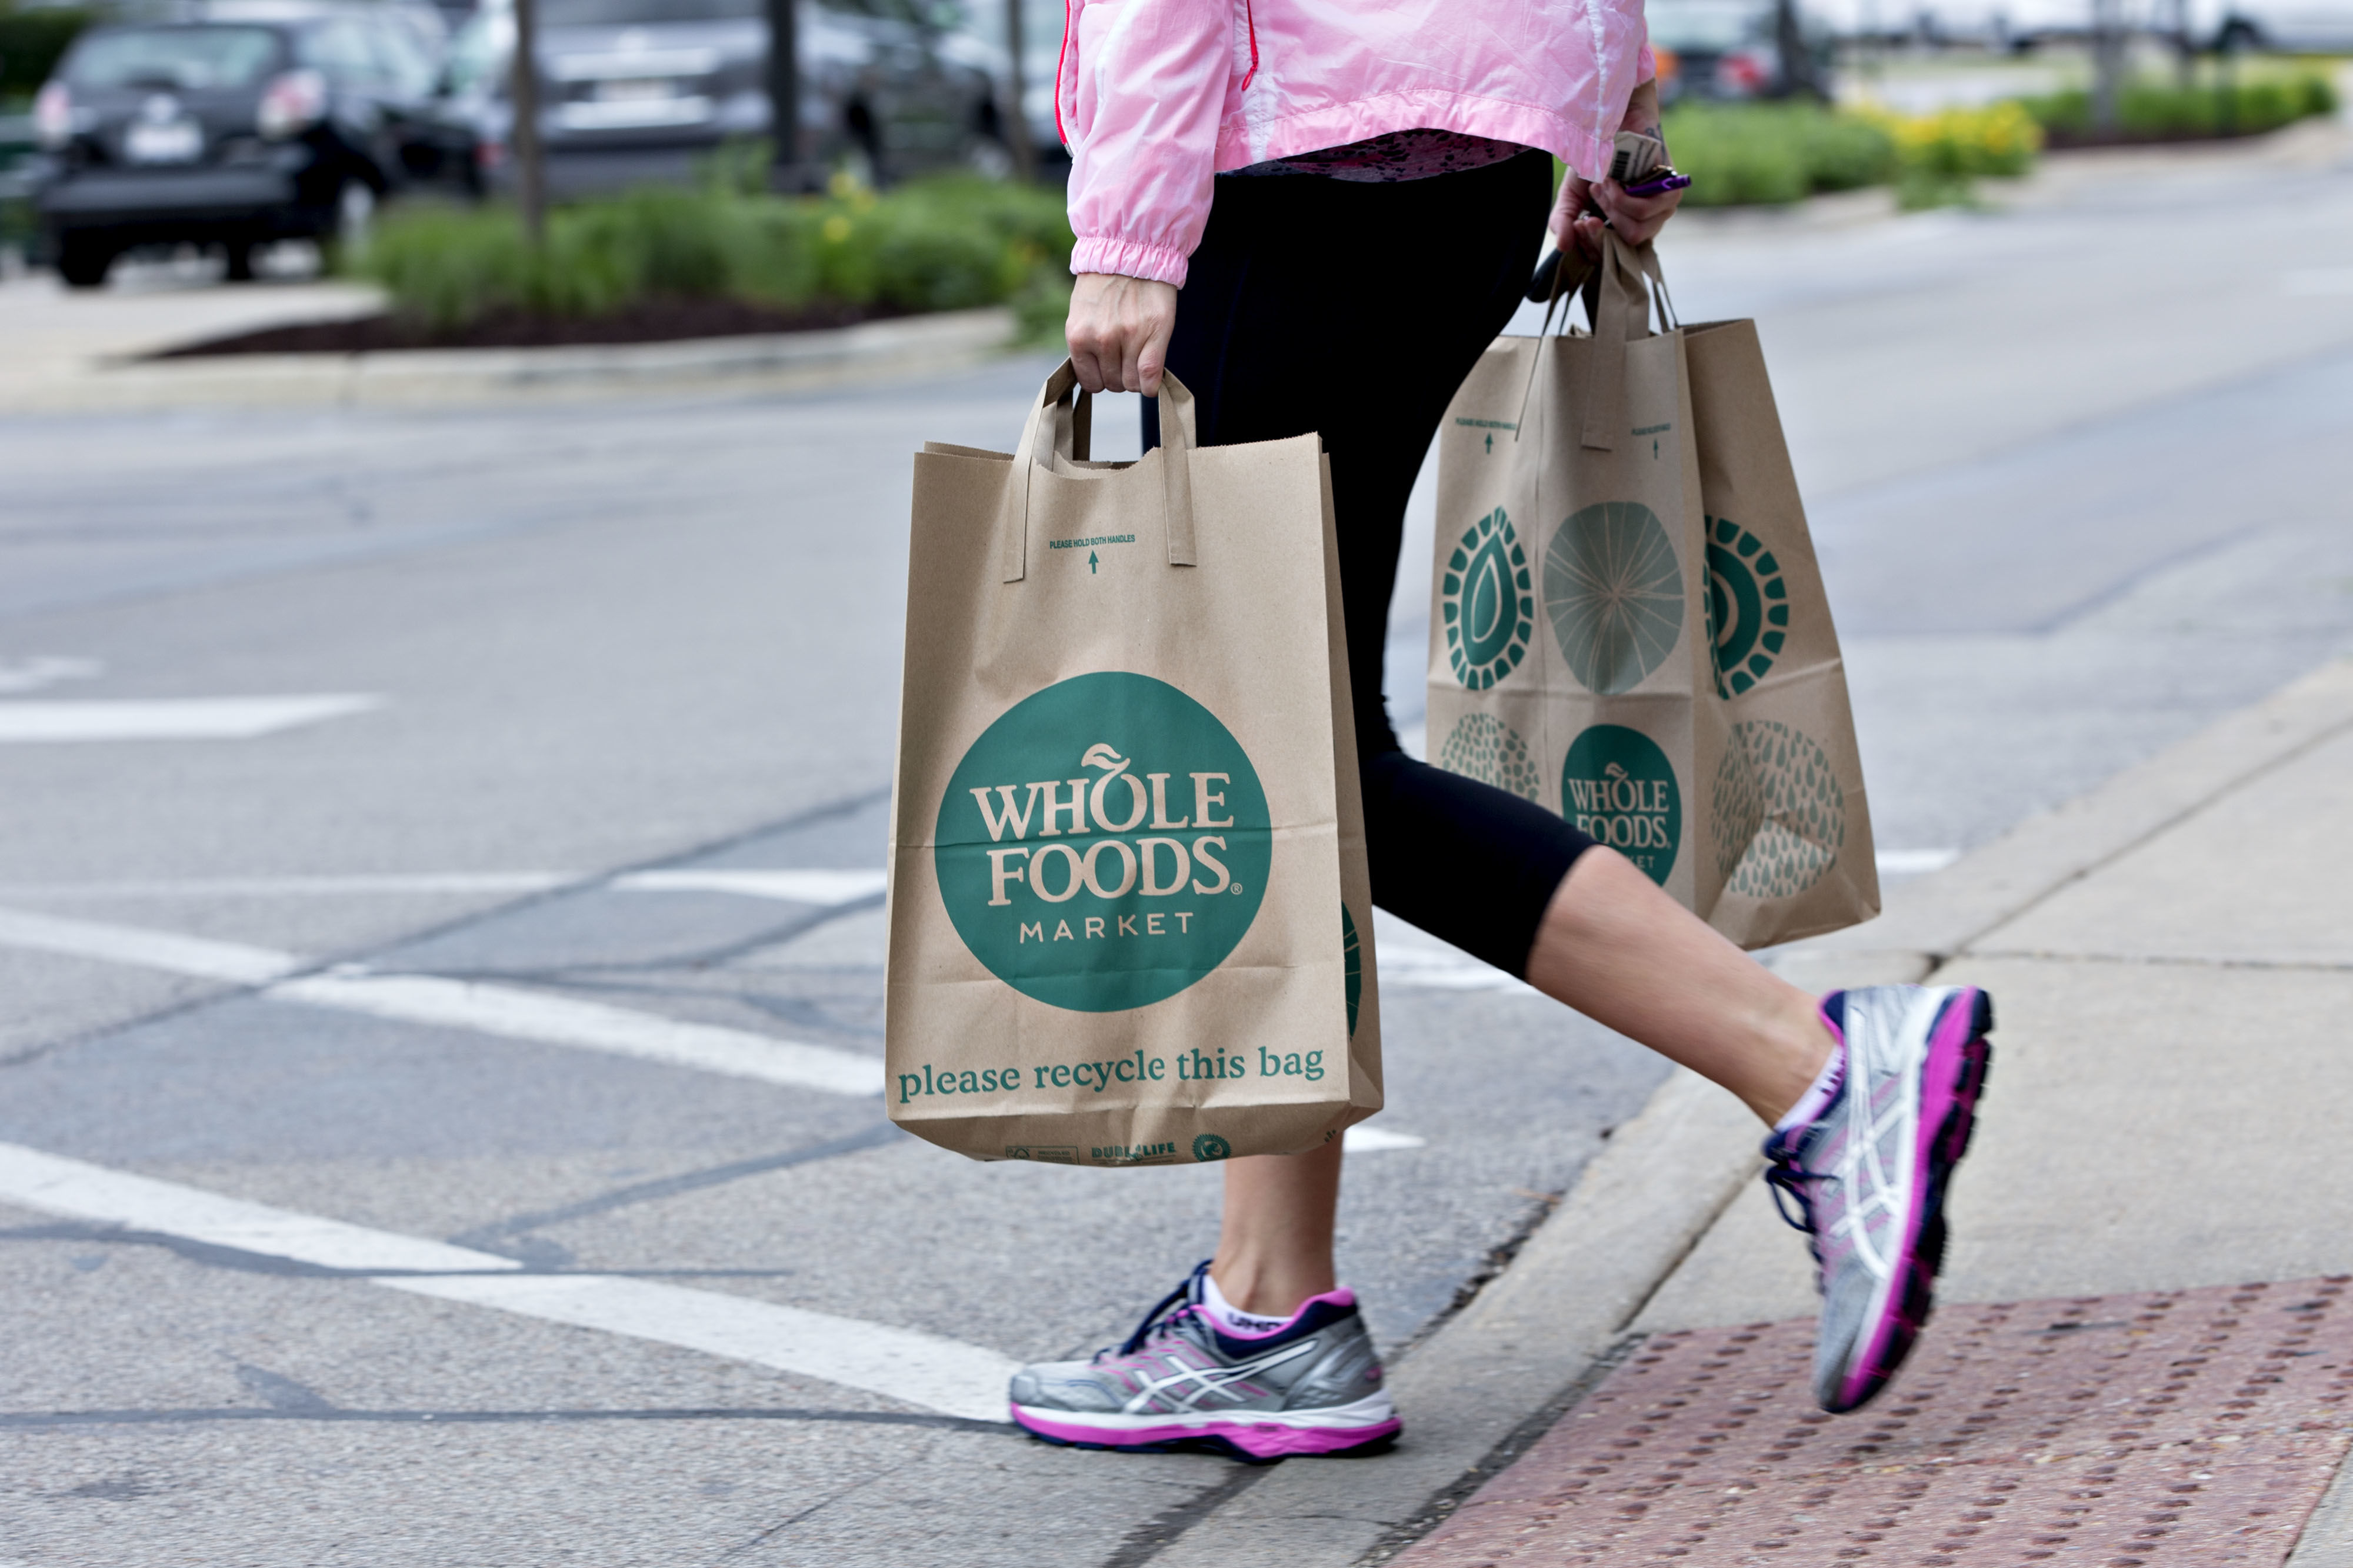 The Most Surprising Thing About the Amazon-Whole Foods Deal